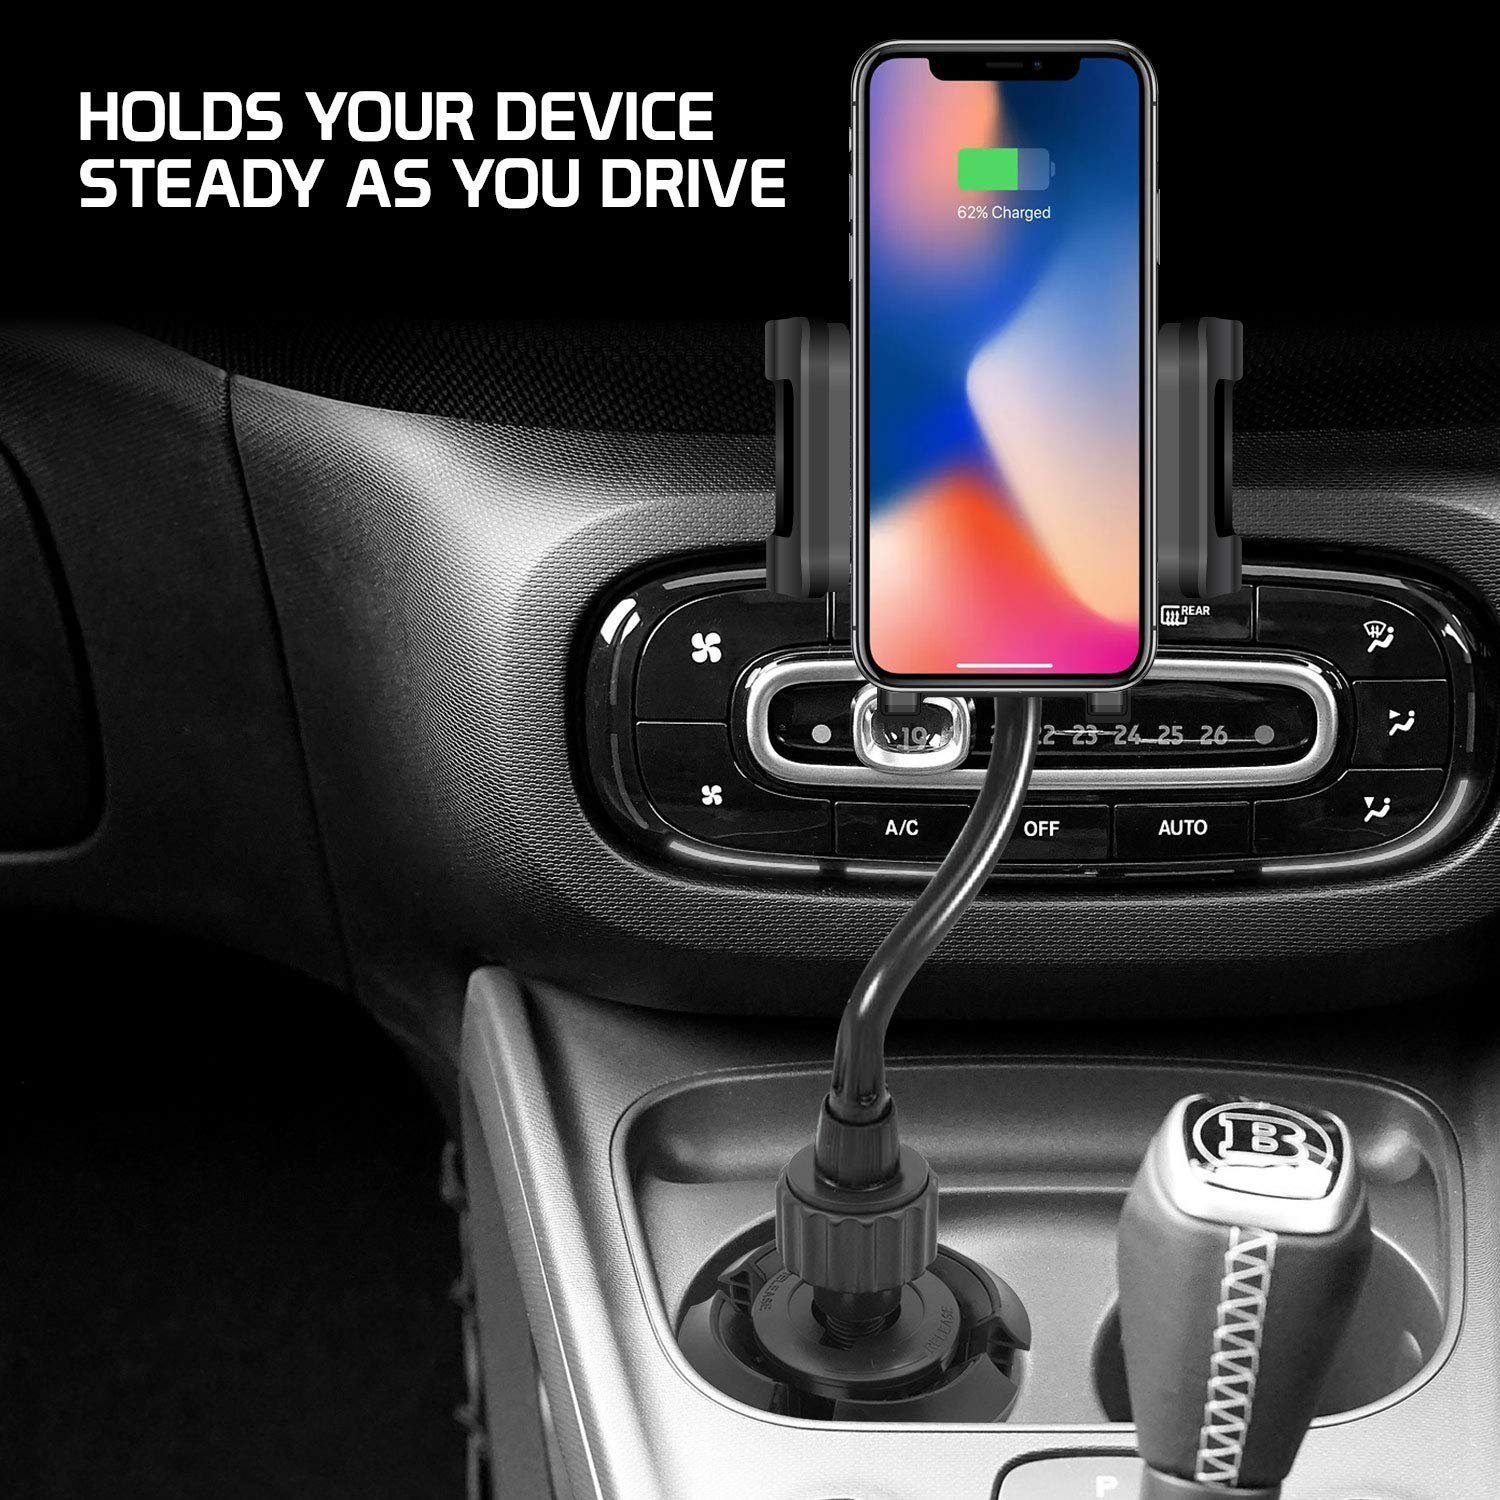 Black Bysionics Wireless Car Charger,Automatic 10w Qi Fast Wireless Charging Cup Phone Holder /& Air Vent Car Phone Mount Compatible with iPhone Samsung /& Qi Enabled